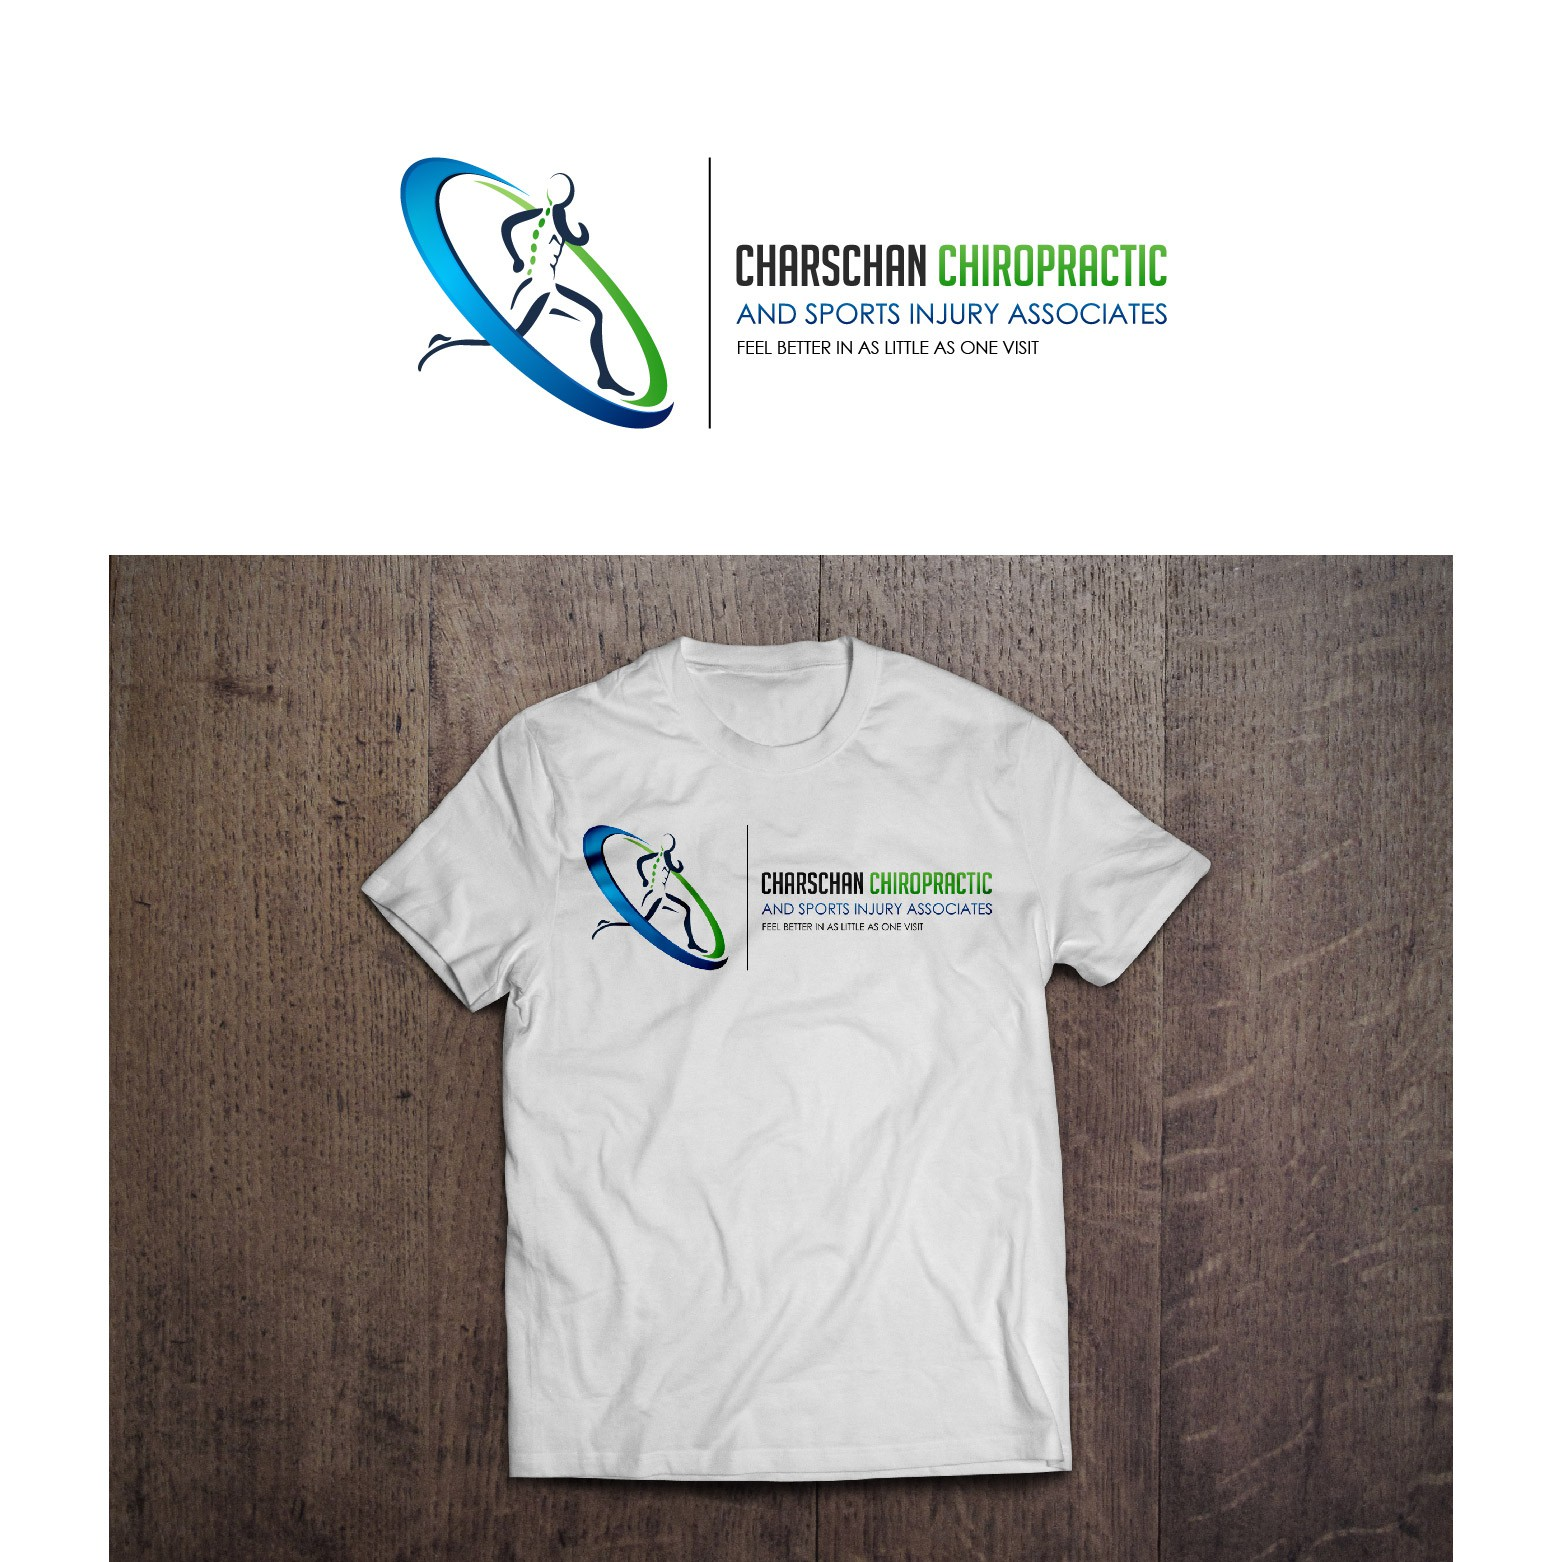 Charschan Chiropractic and Sports Injury Associates needs a logoectomy.  Help us update our logo.